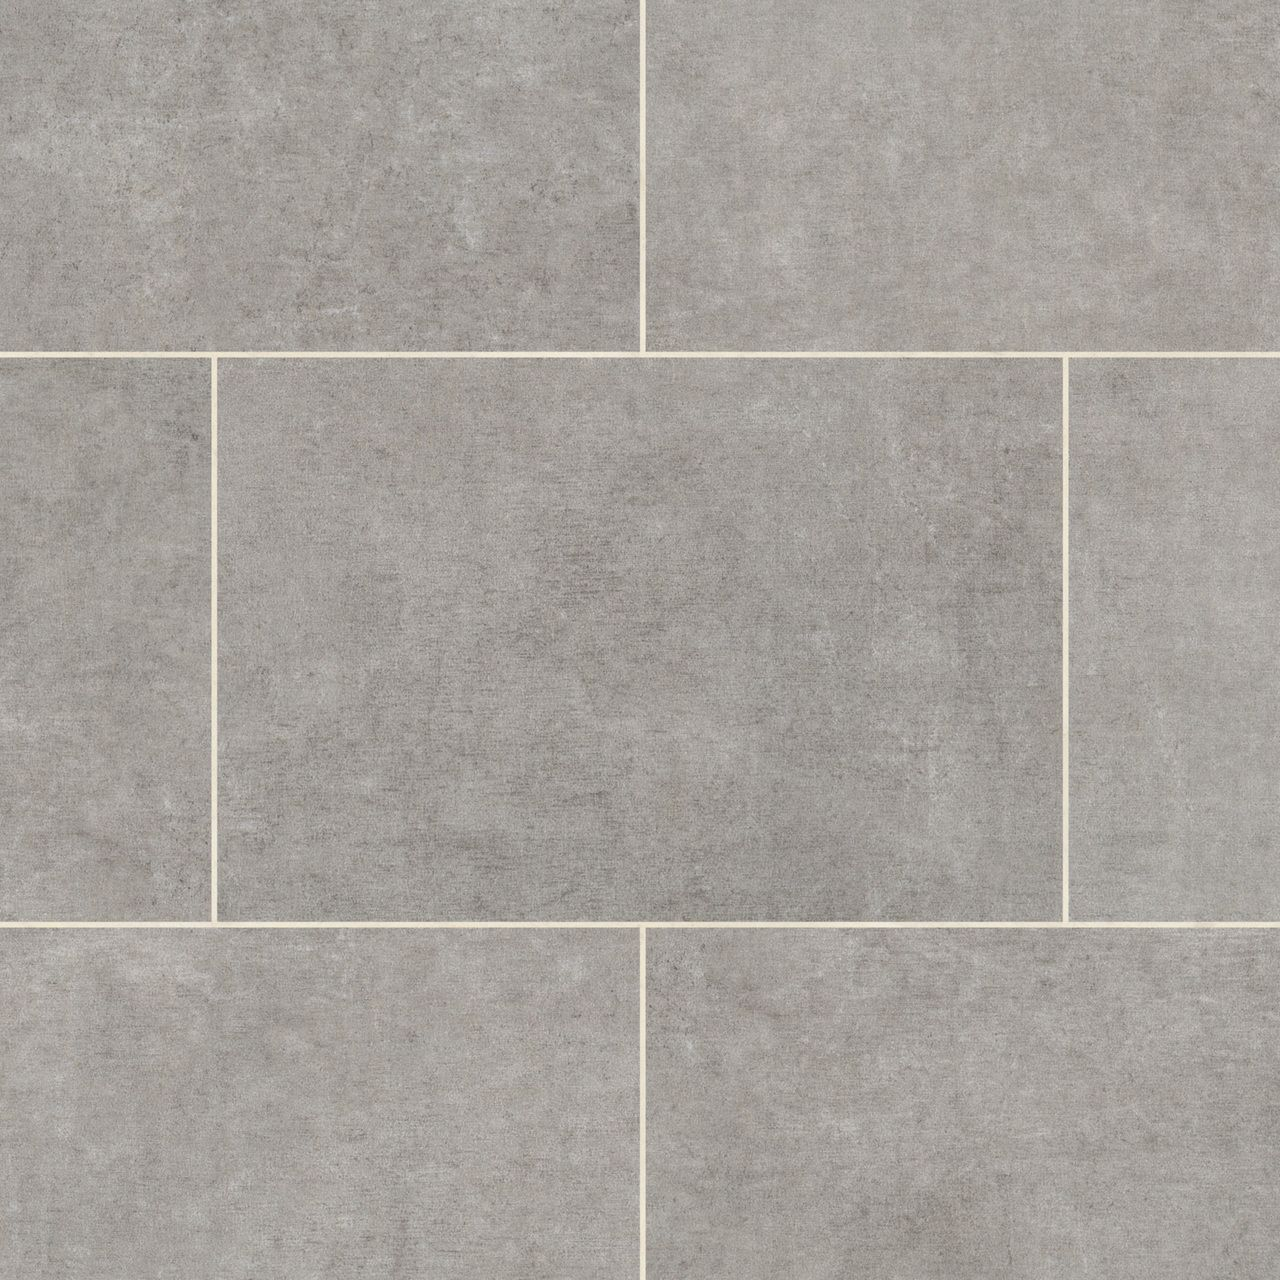 Karndean Da Vinci Stone Tile Cambric 12 X 18 Vinyl Regal Floor Coverings Vinyl Flooring Stone Flooring Tile Floor